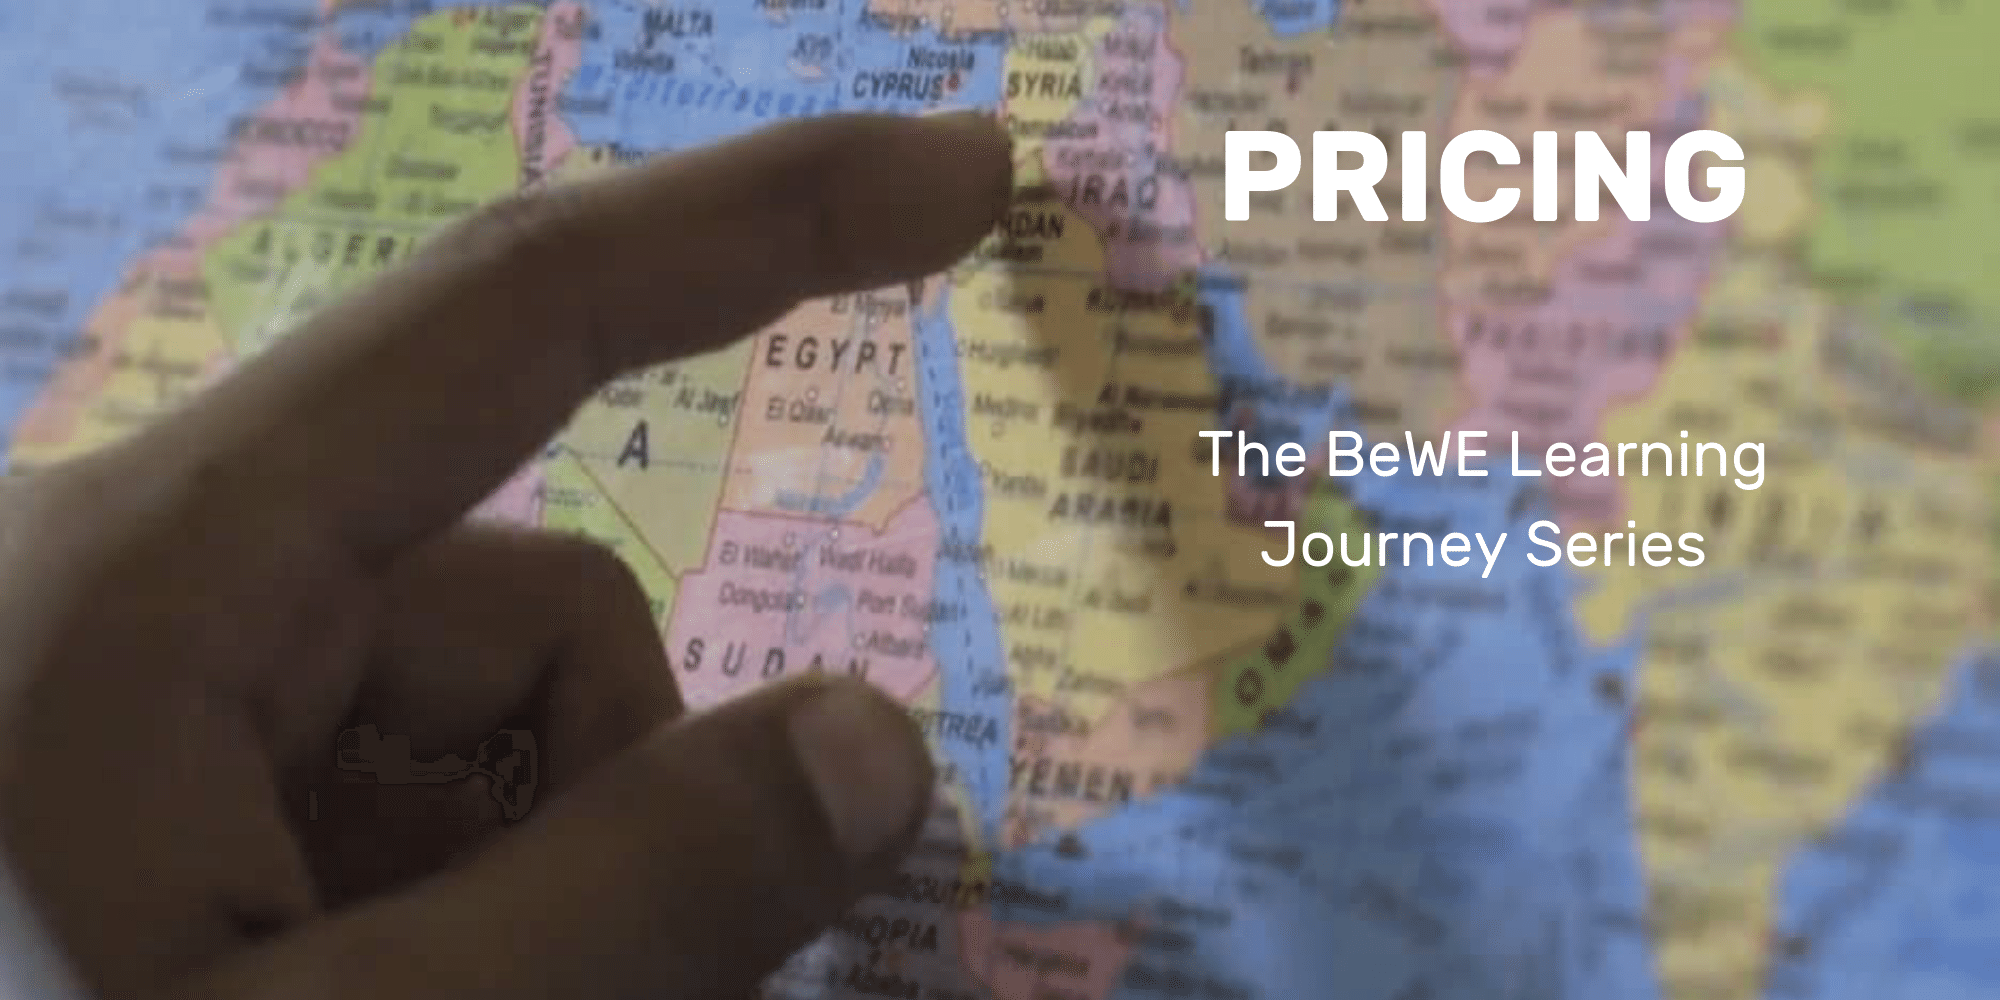 The BeWE Learning Journey: Pricing